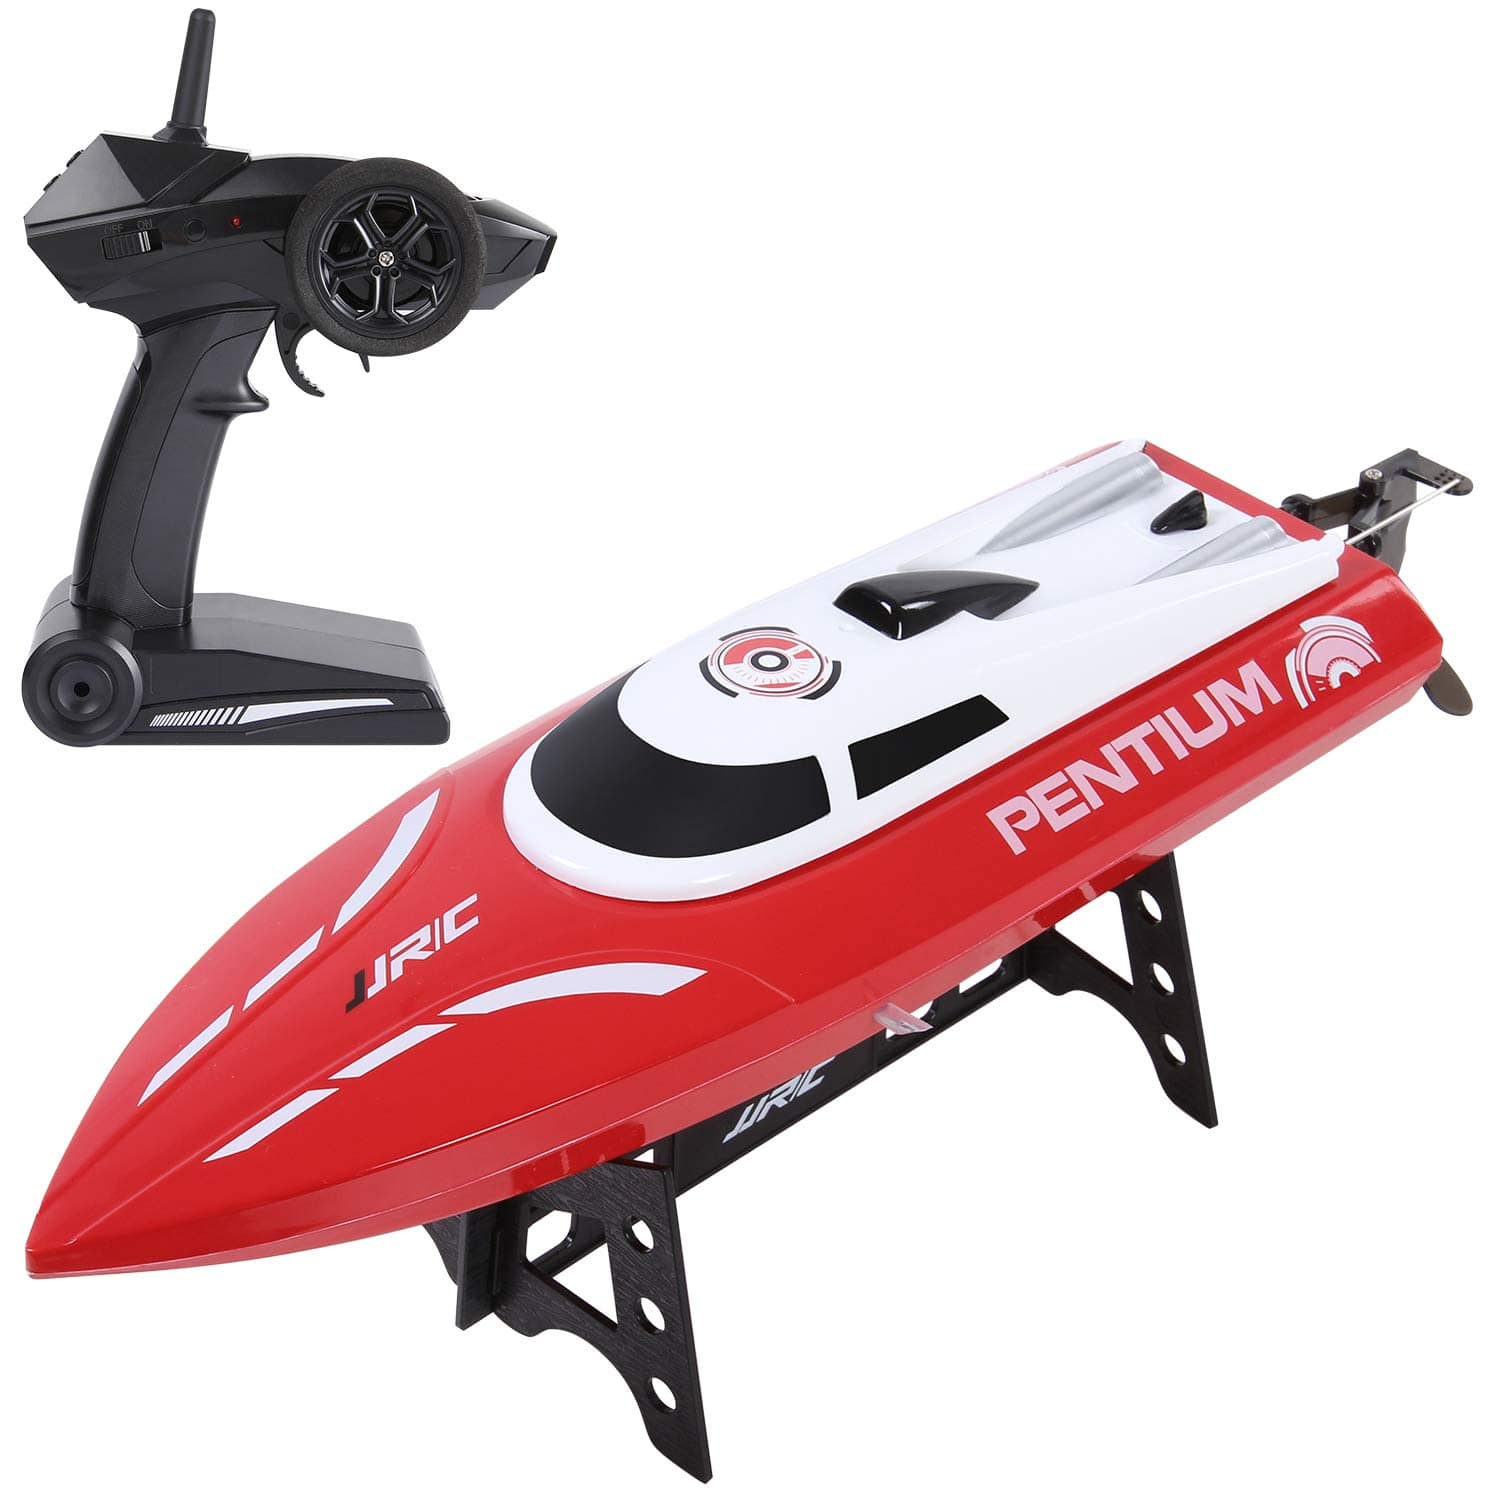 RC Race Boat, 25 KM/H Remote Control Boat for Kid Adult $36.39 + Free Shipping @Amazon